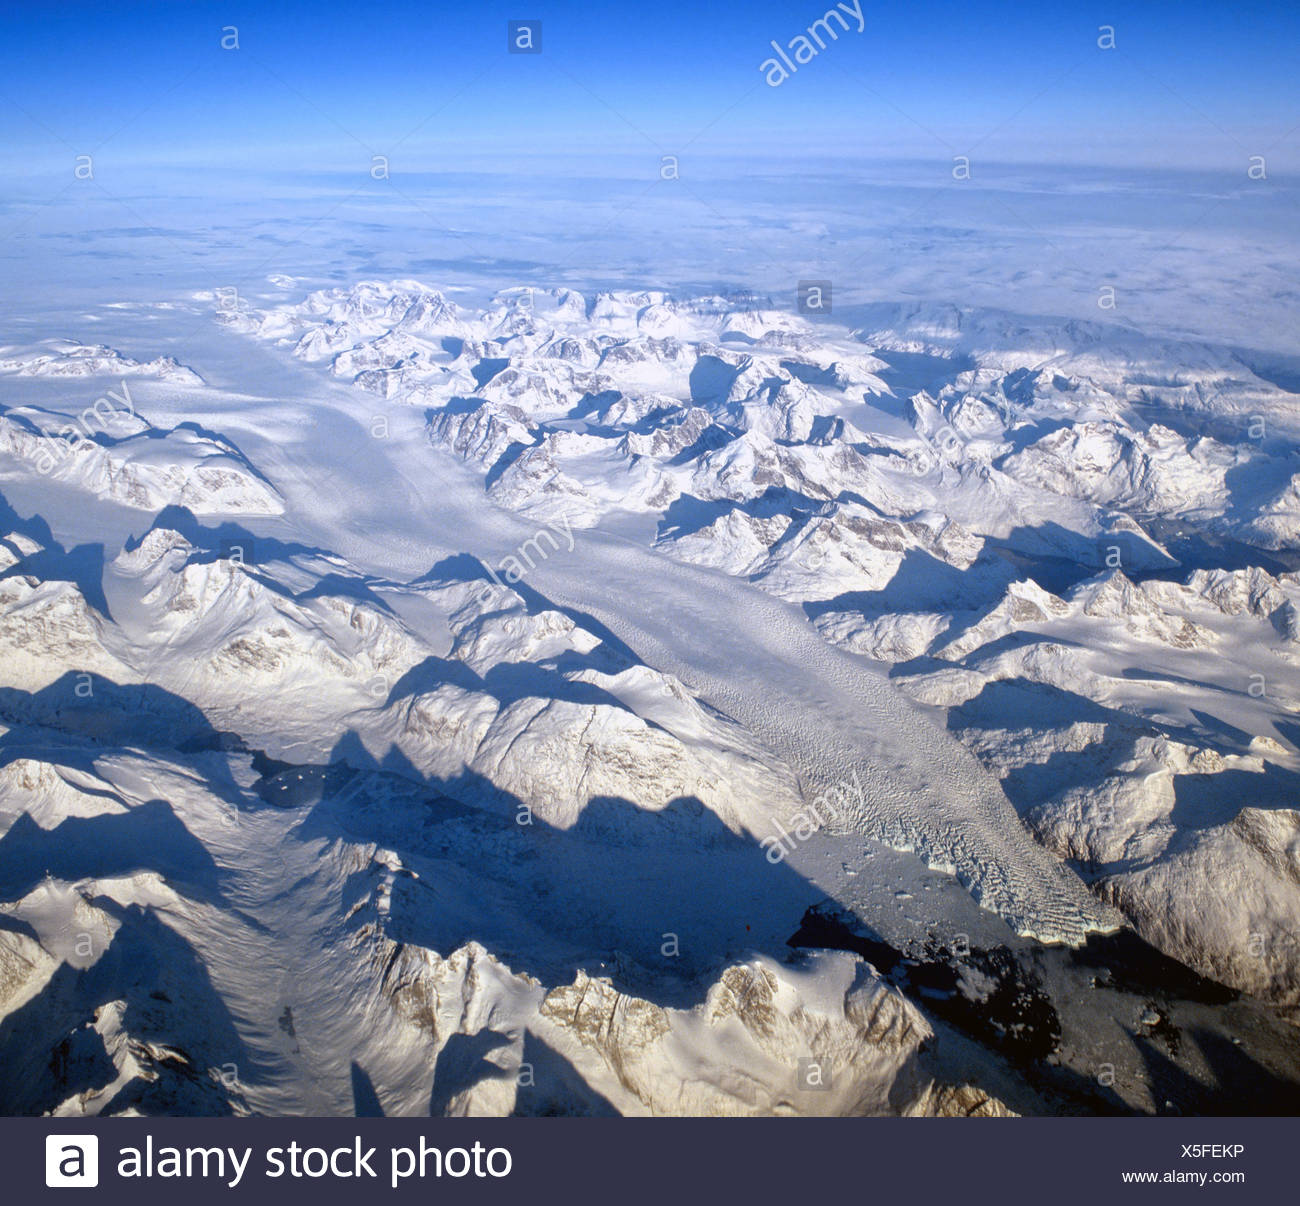 Glacier in southern Greenland, view from an elevation of 10 000 metres, aerial view, Greenland - Stock Image